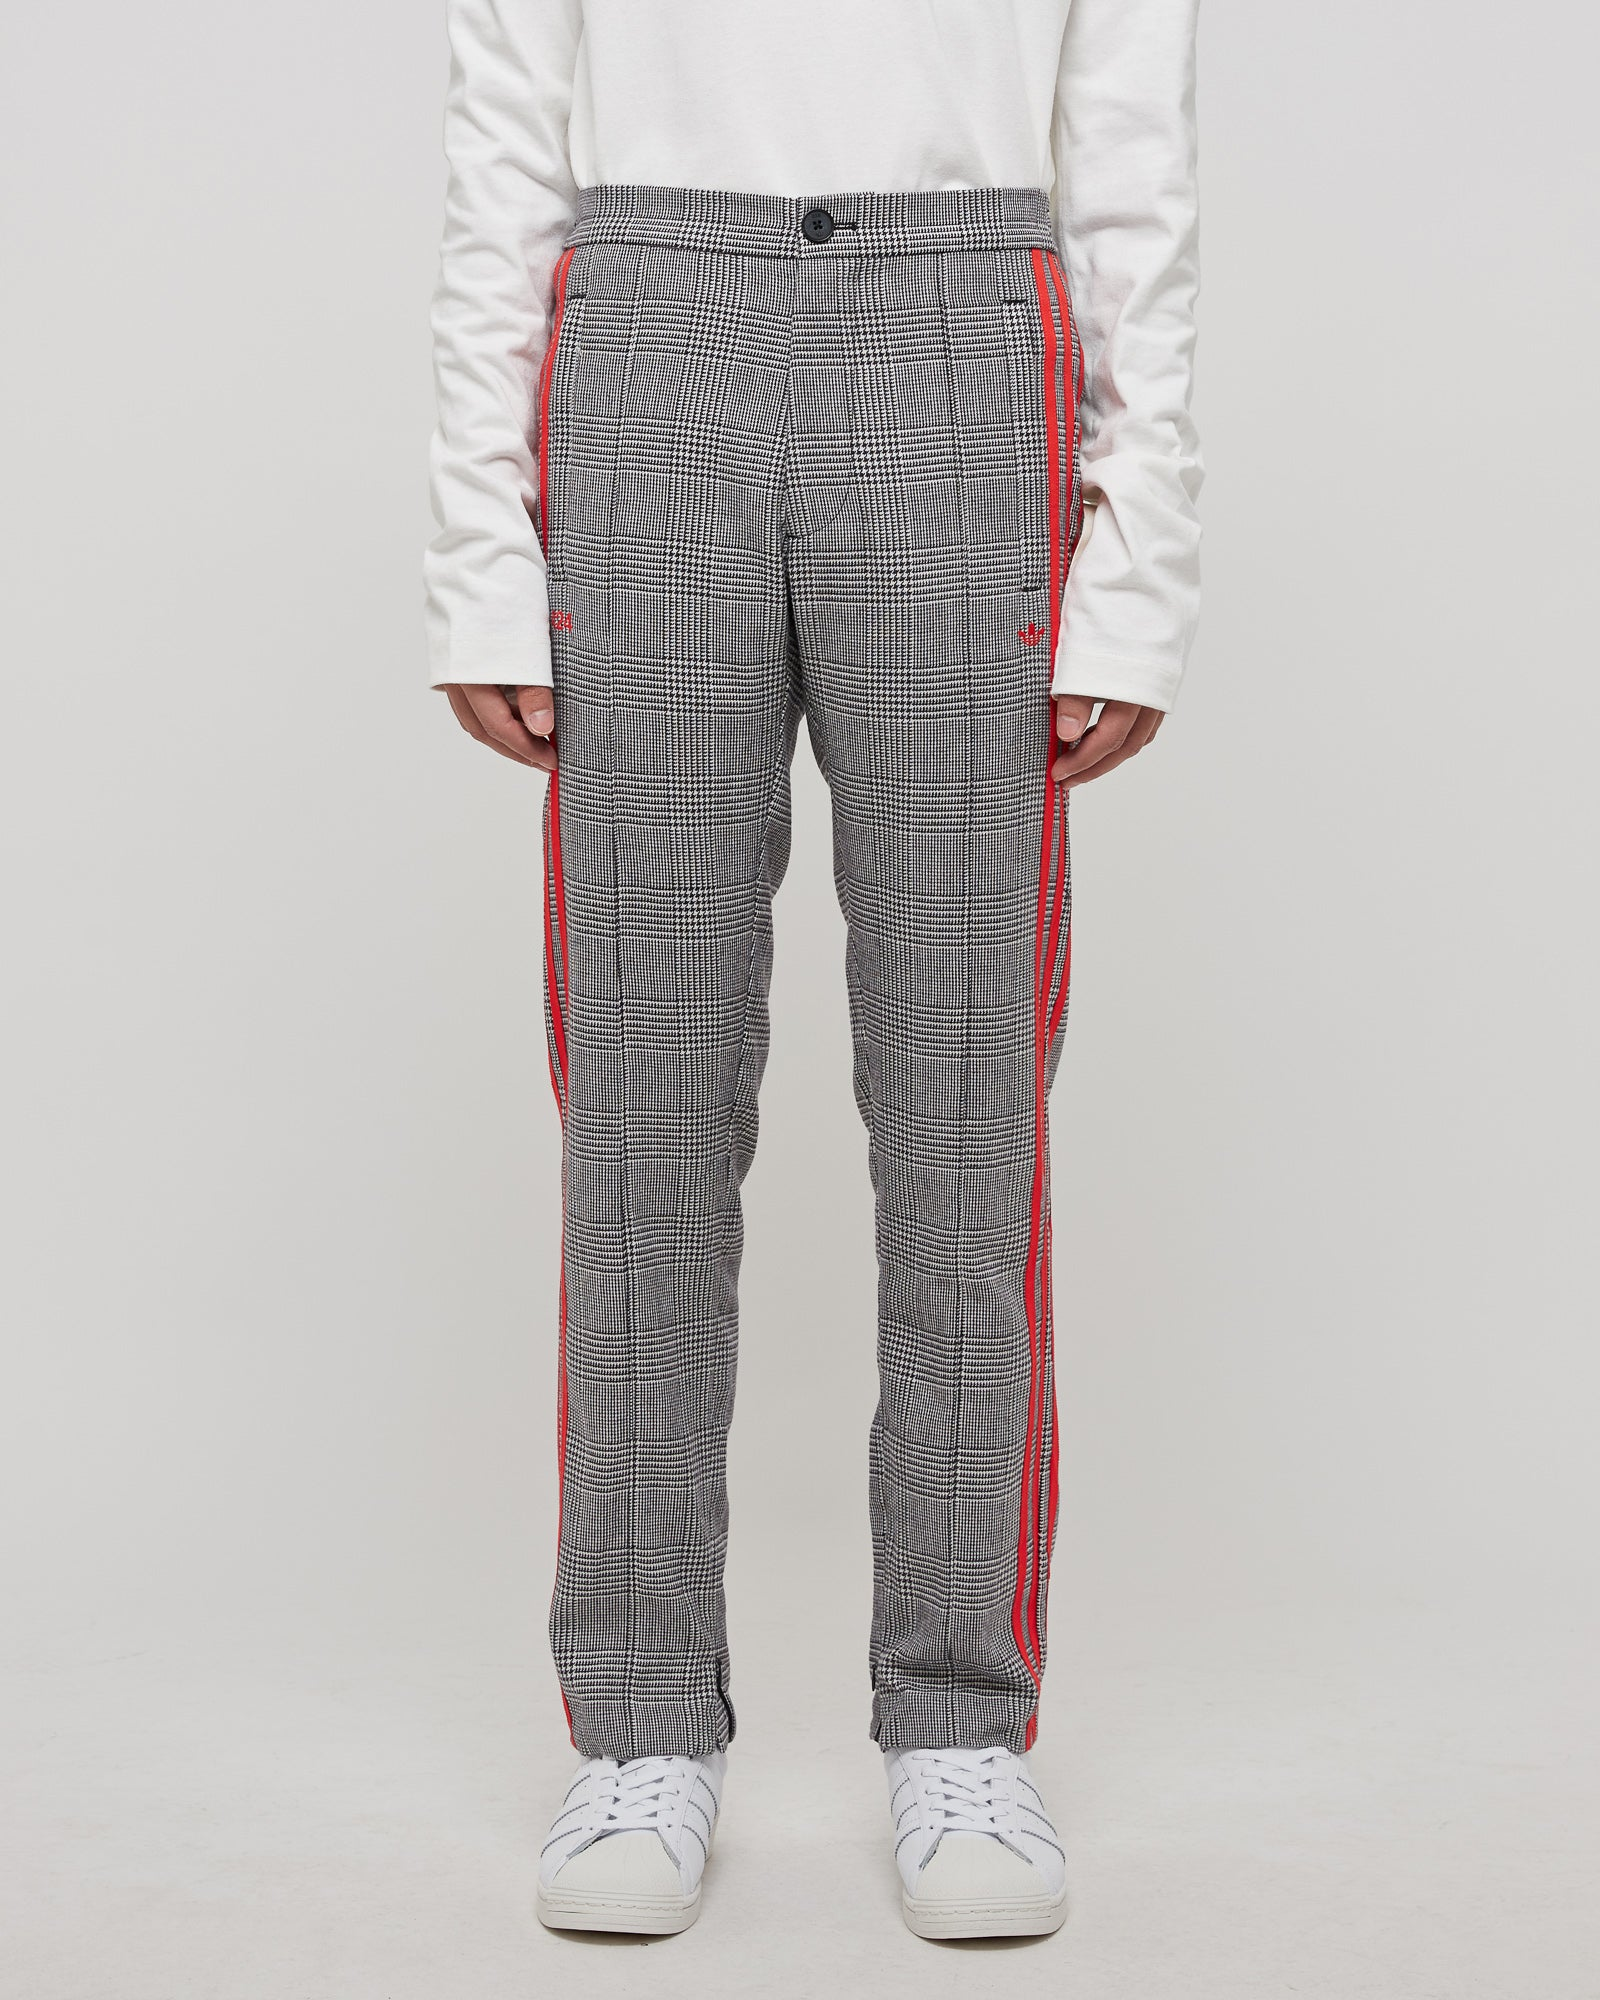 424 Wool Trousers in Gray/Red Stripe